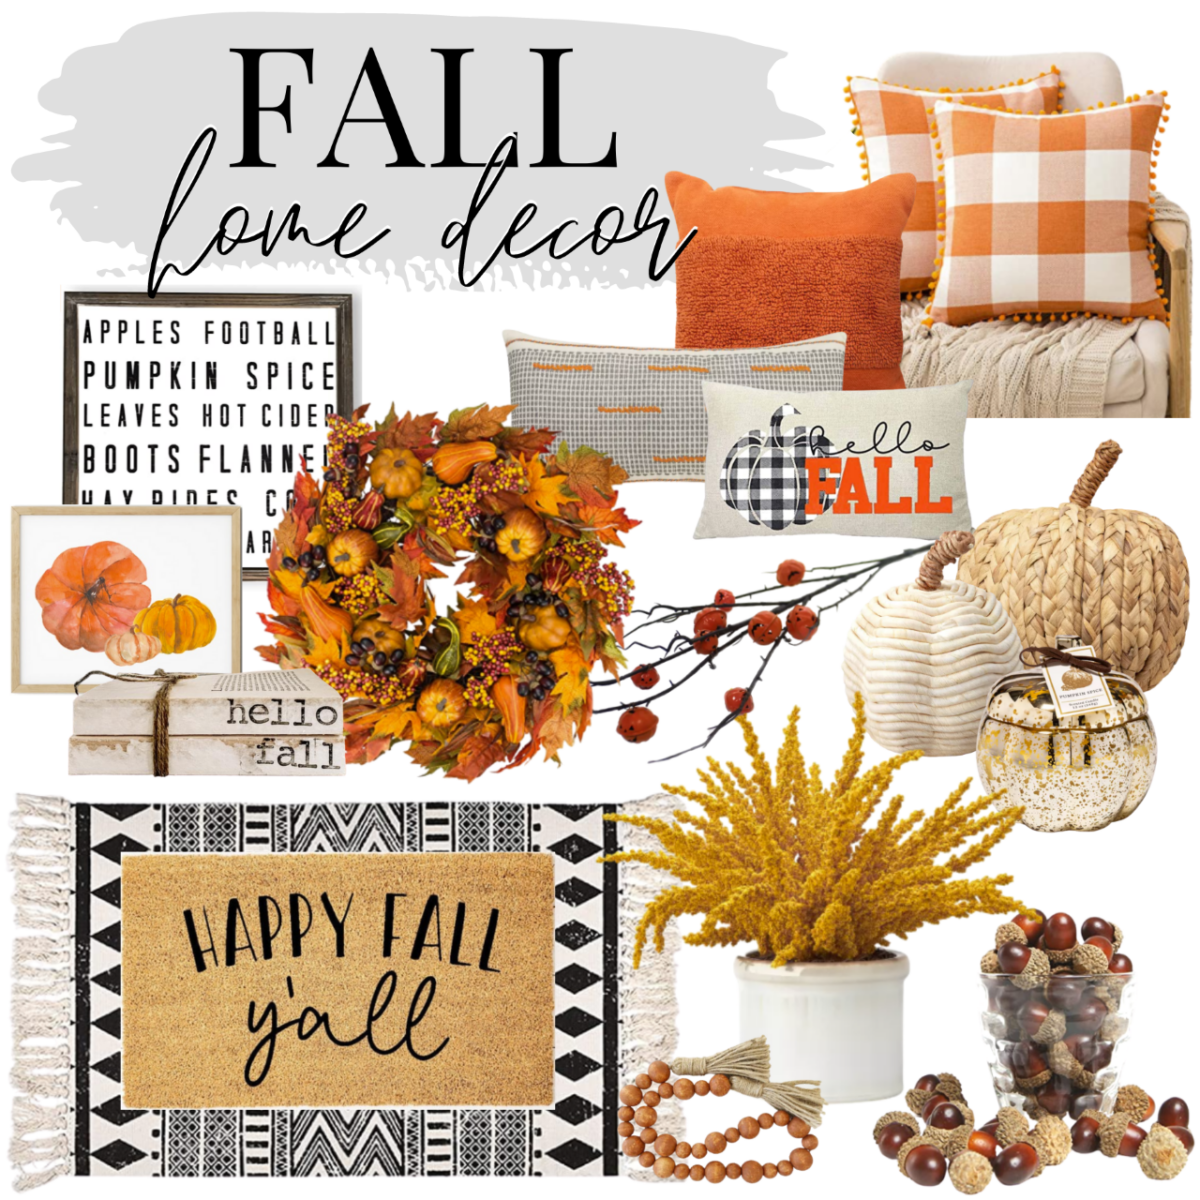 bargain fall decor | Fall Decor by popular Houston life and style blog, Haute and Humid: collage image of Amazon MIULEE Set of 2 Retro Farmhouse Buffalo Plaid Check Pillow Cases, Amazon PSDWETS Autumn Decorations Pumpkin Pillow Covers, Etsy Trellis Grey (Dark) Wooden Bead Garland, faux pumpkins, wooden bead tassel garland, black and what rug, Happy Fall Y'all outdoor mat, pumpkin watercolor painting, and faux acorn decor.